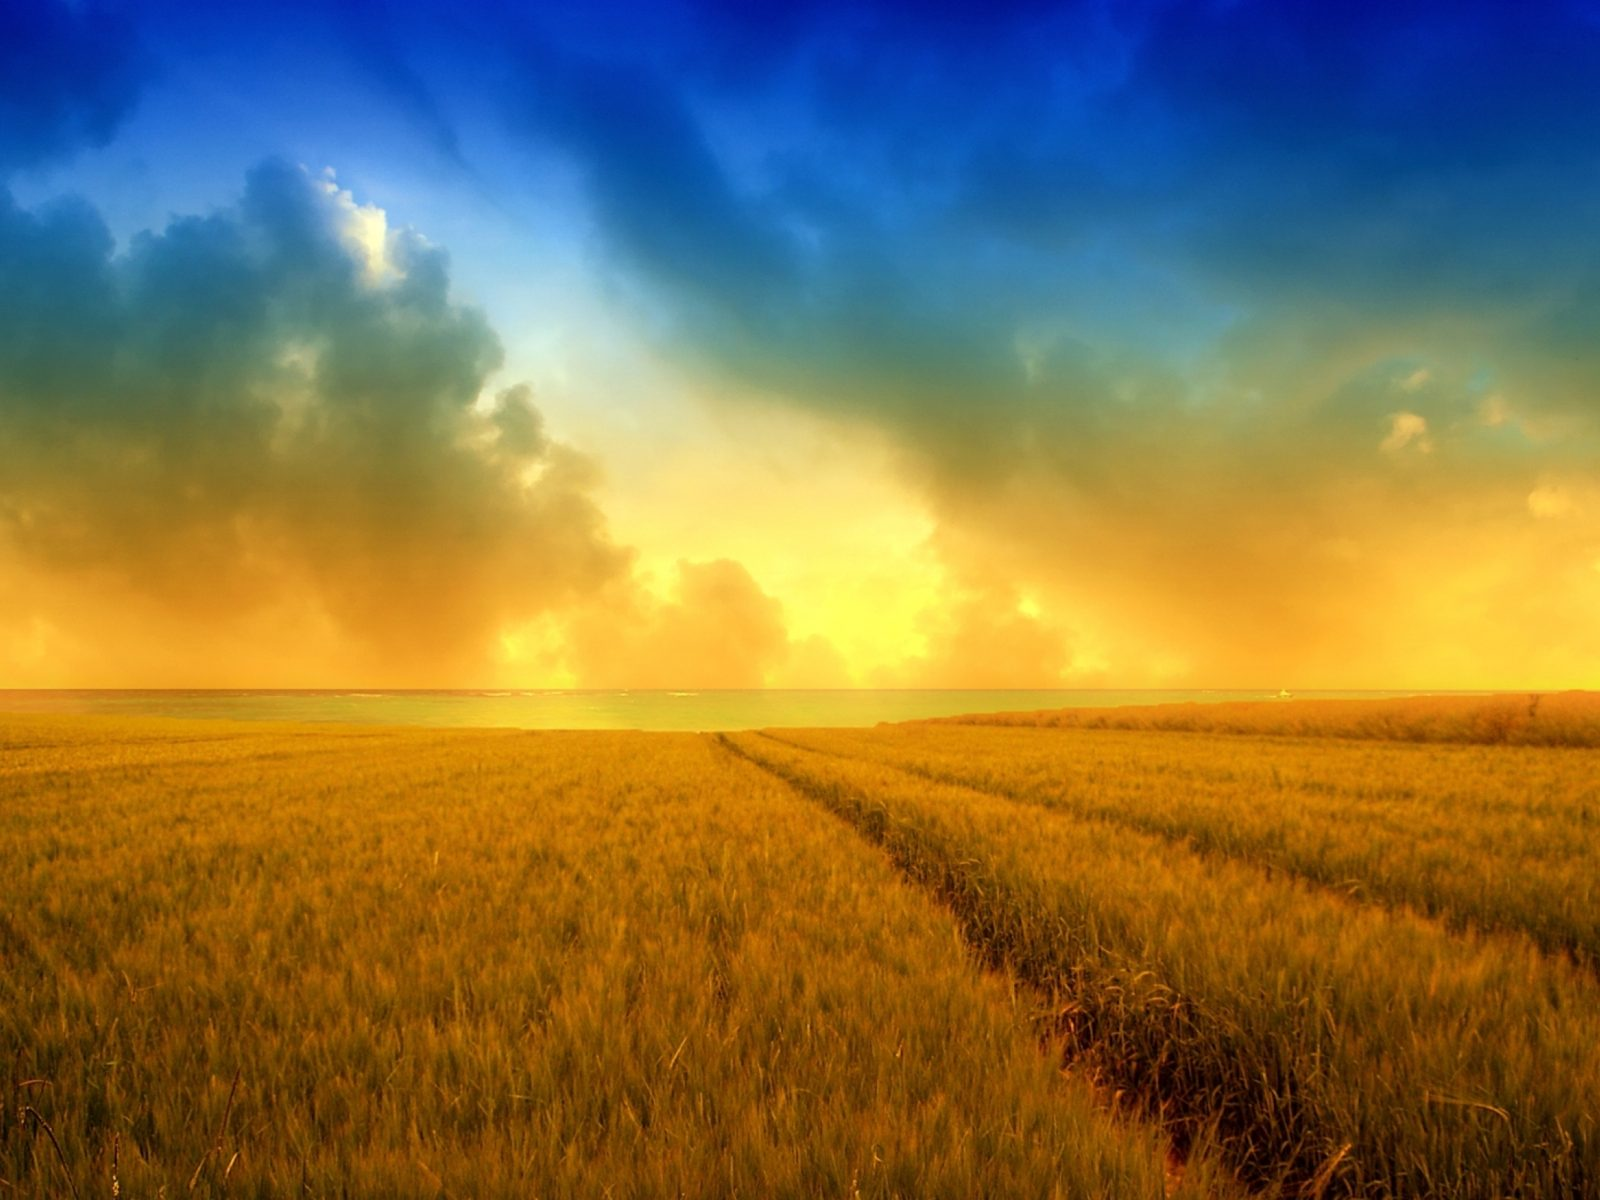 Fall Harvest Wallpaper Christian Hd Wallpapers Golden Harvest Wheat Field 2560x1600